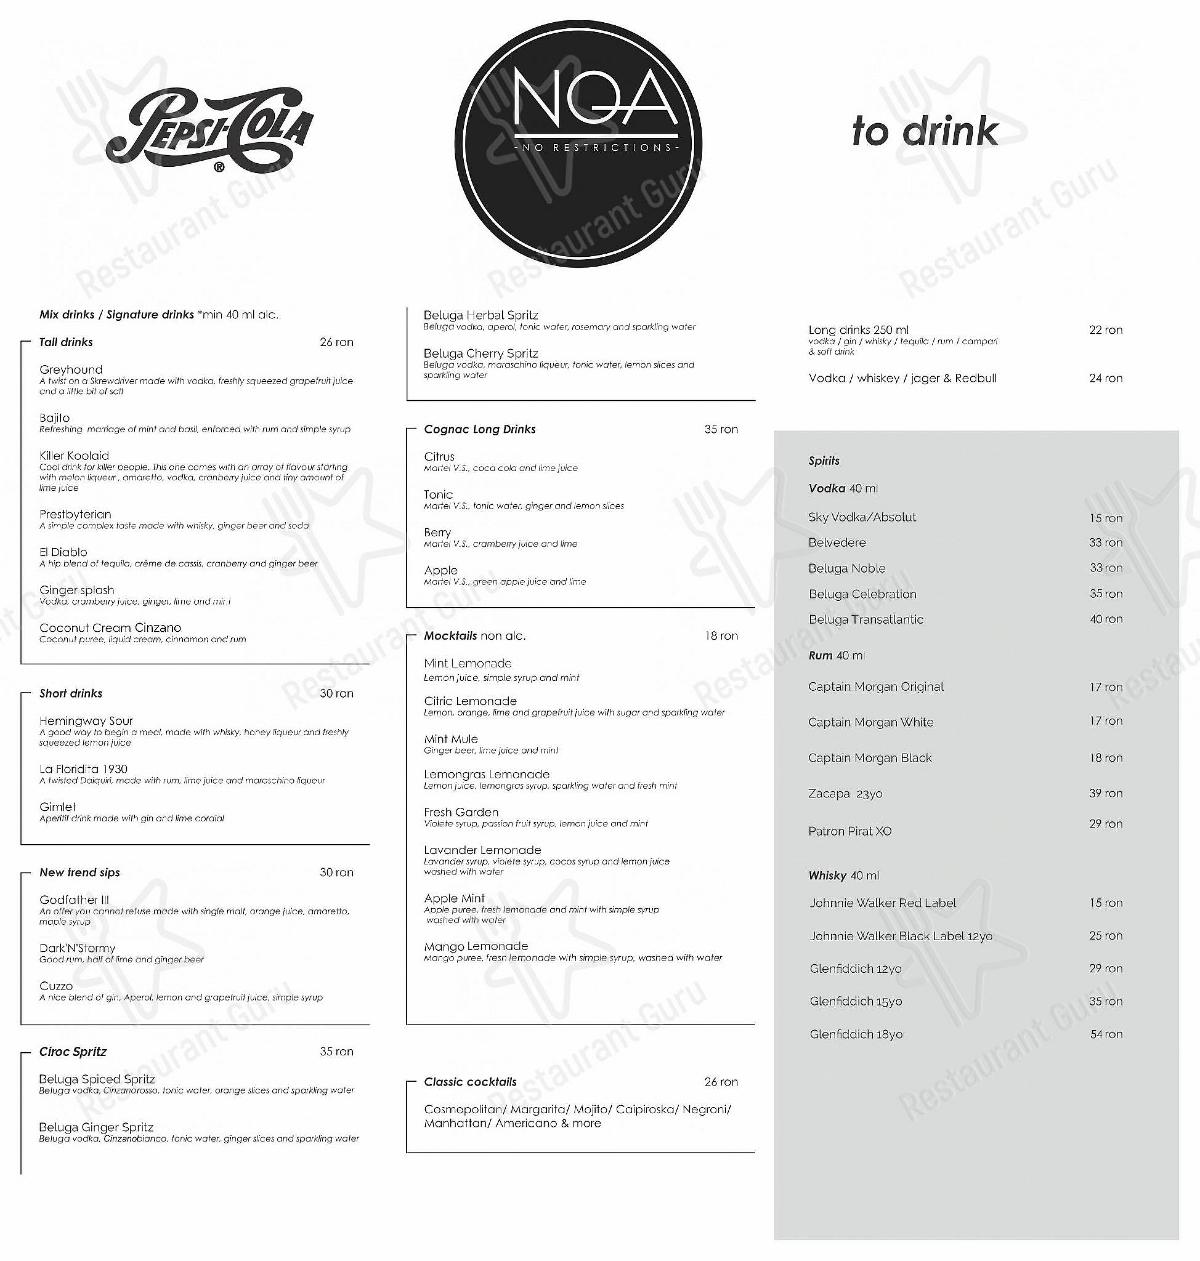 Check out the menu for Noa restoclub